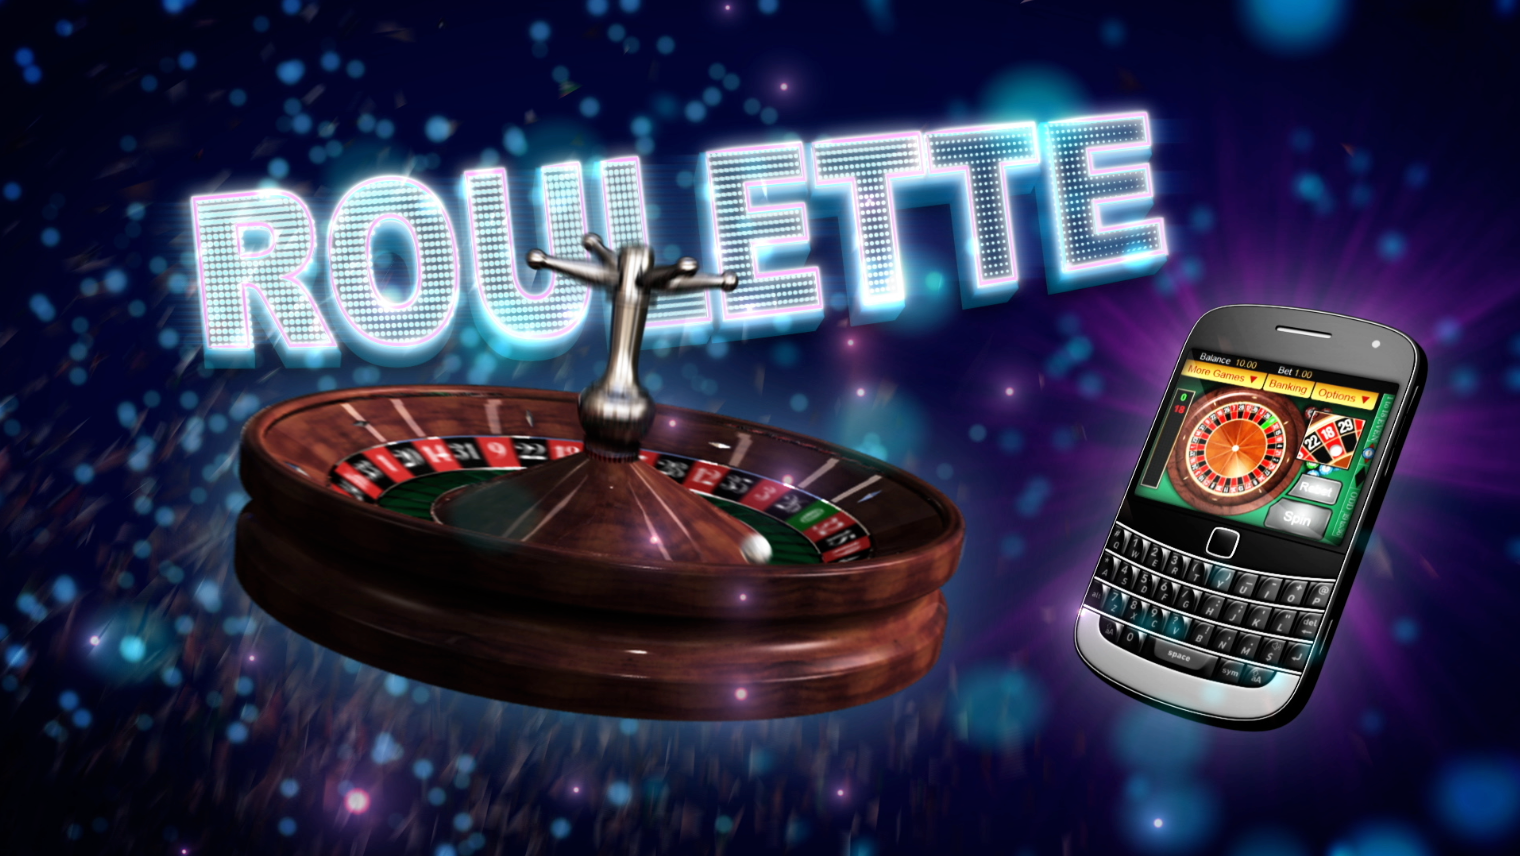 Party city casino mobile download